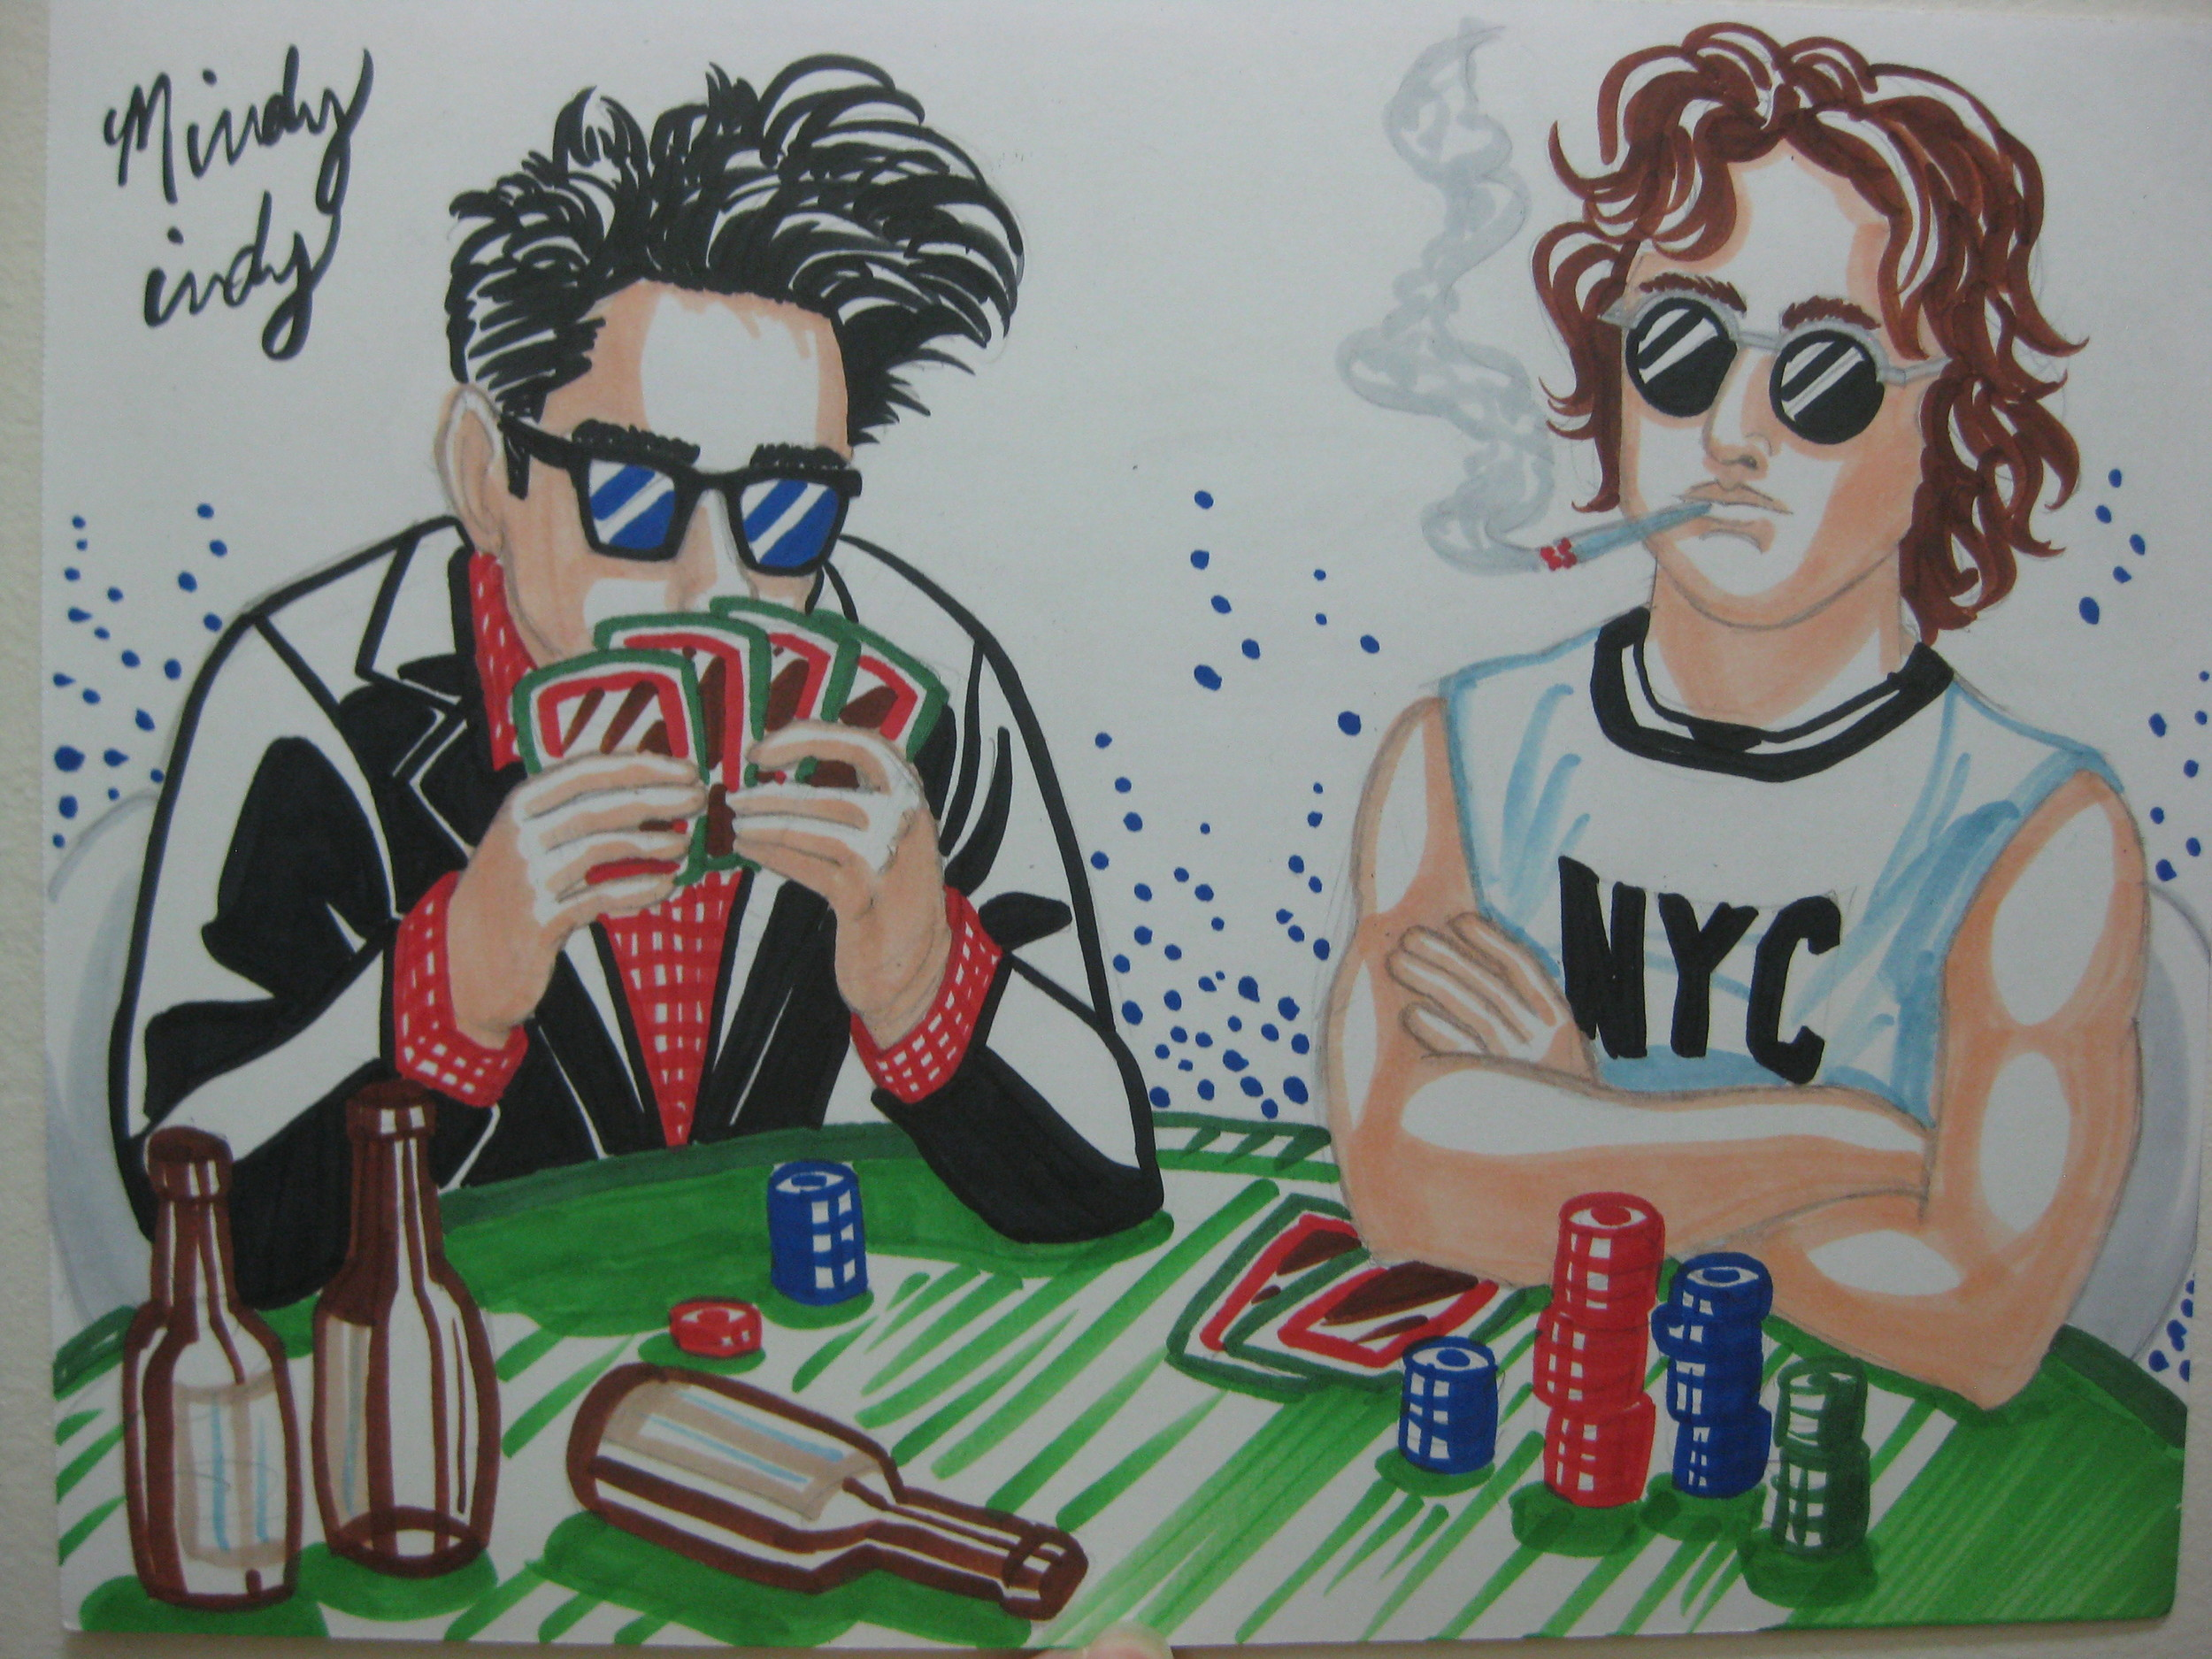 Morrissey VS. John Lennon at poker.  These are the kinds of awesome things that I can make happen!  Of course Morrissey is losing at the game, like he loses at life in all his emo songs :P